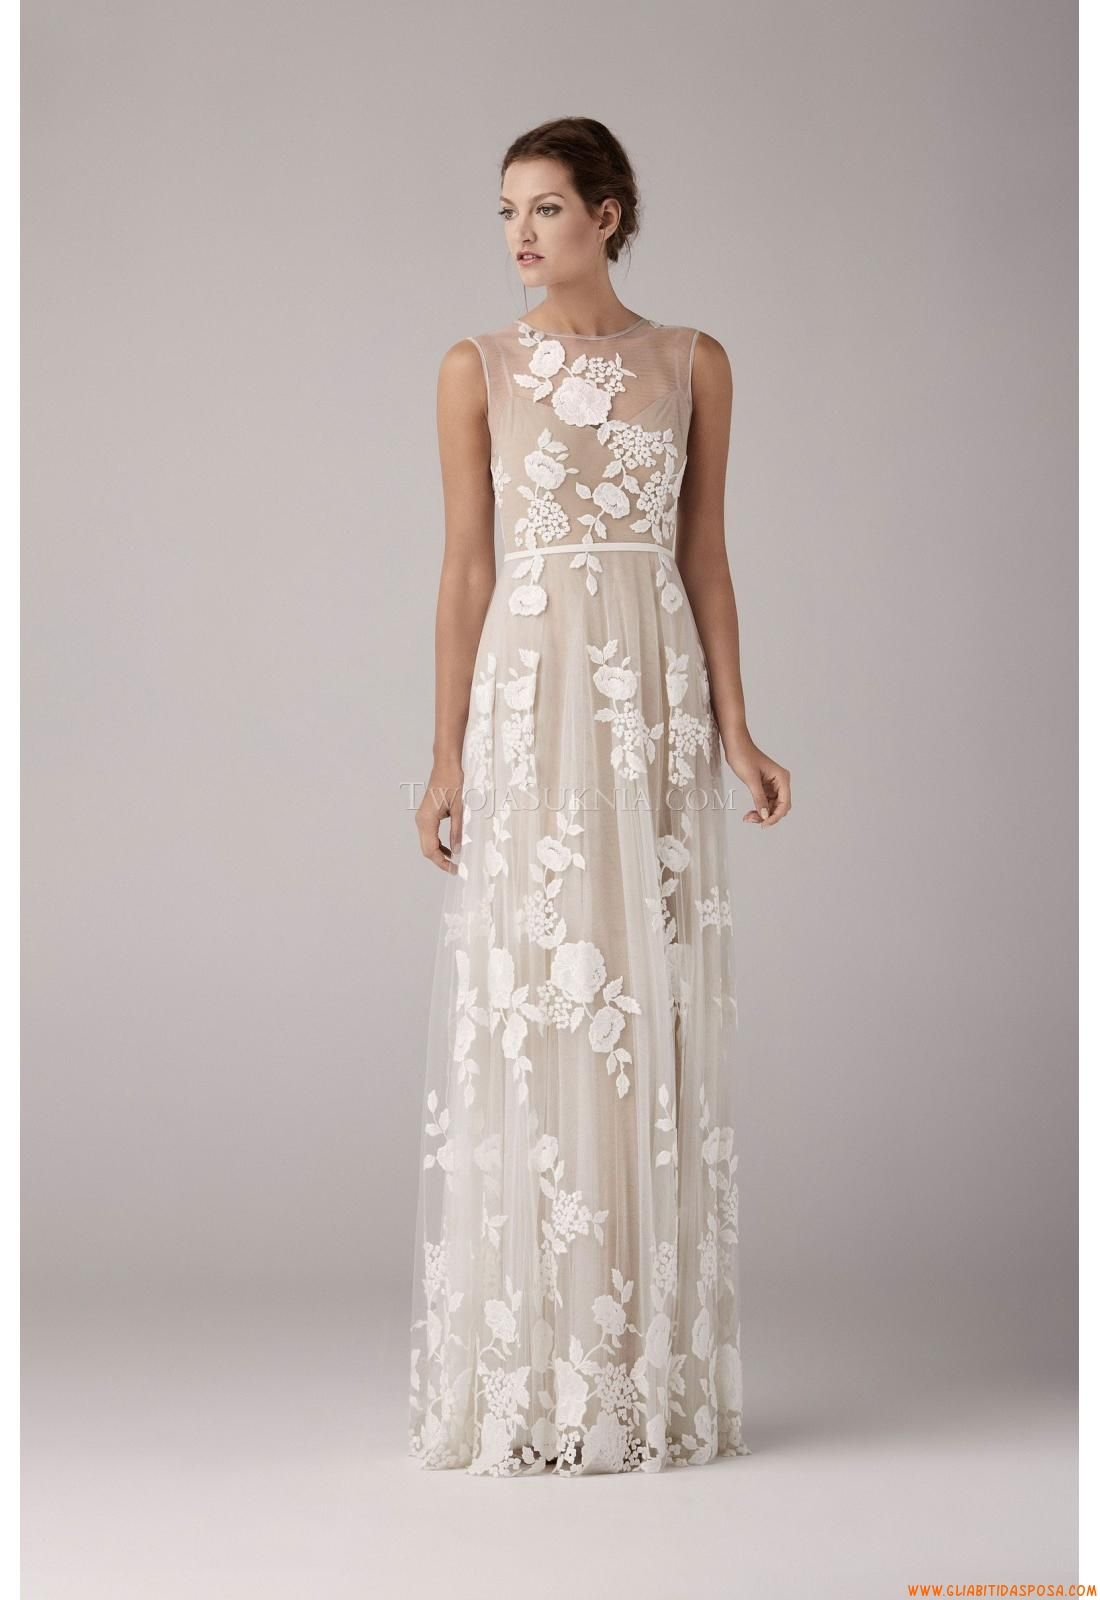 wedding dress for a bohemian style wedding... wonder if i could pull ...